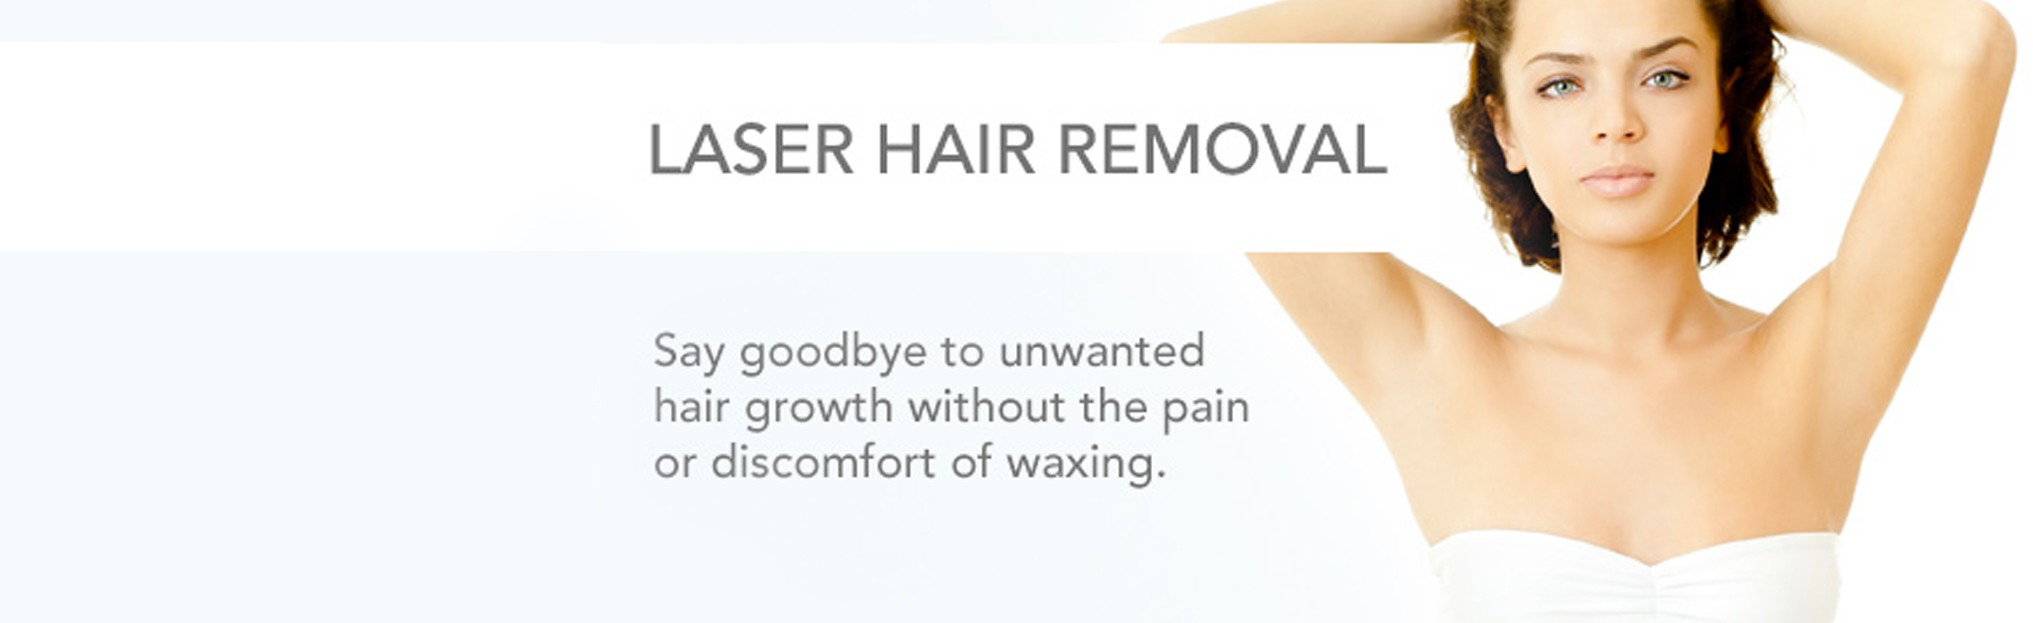 Laser Hair Removal In Metairie La Chronos Bhw